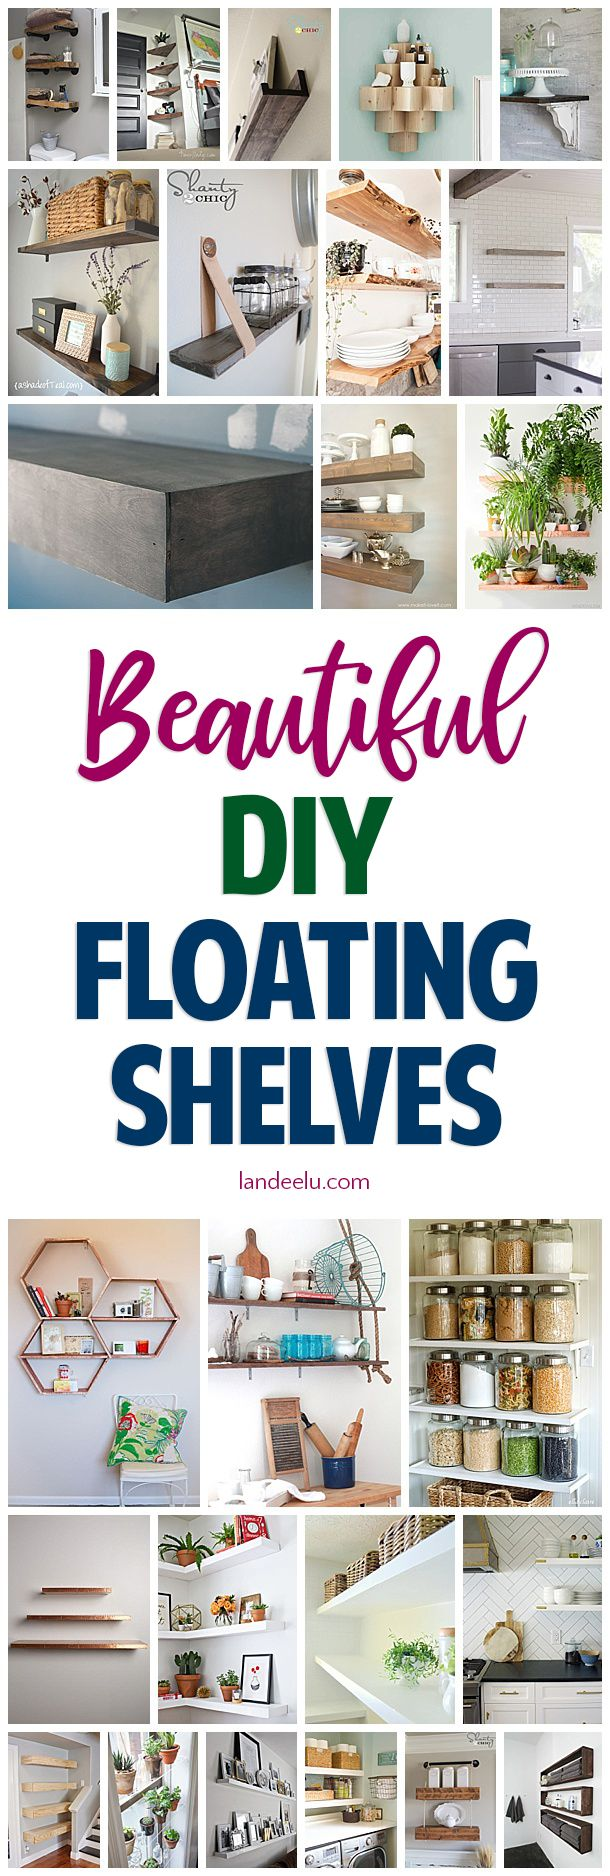 Check out all of these awesome DIY floating shelves tutorials! A fantastic and i...